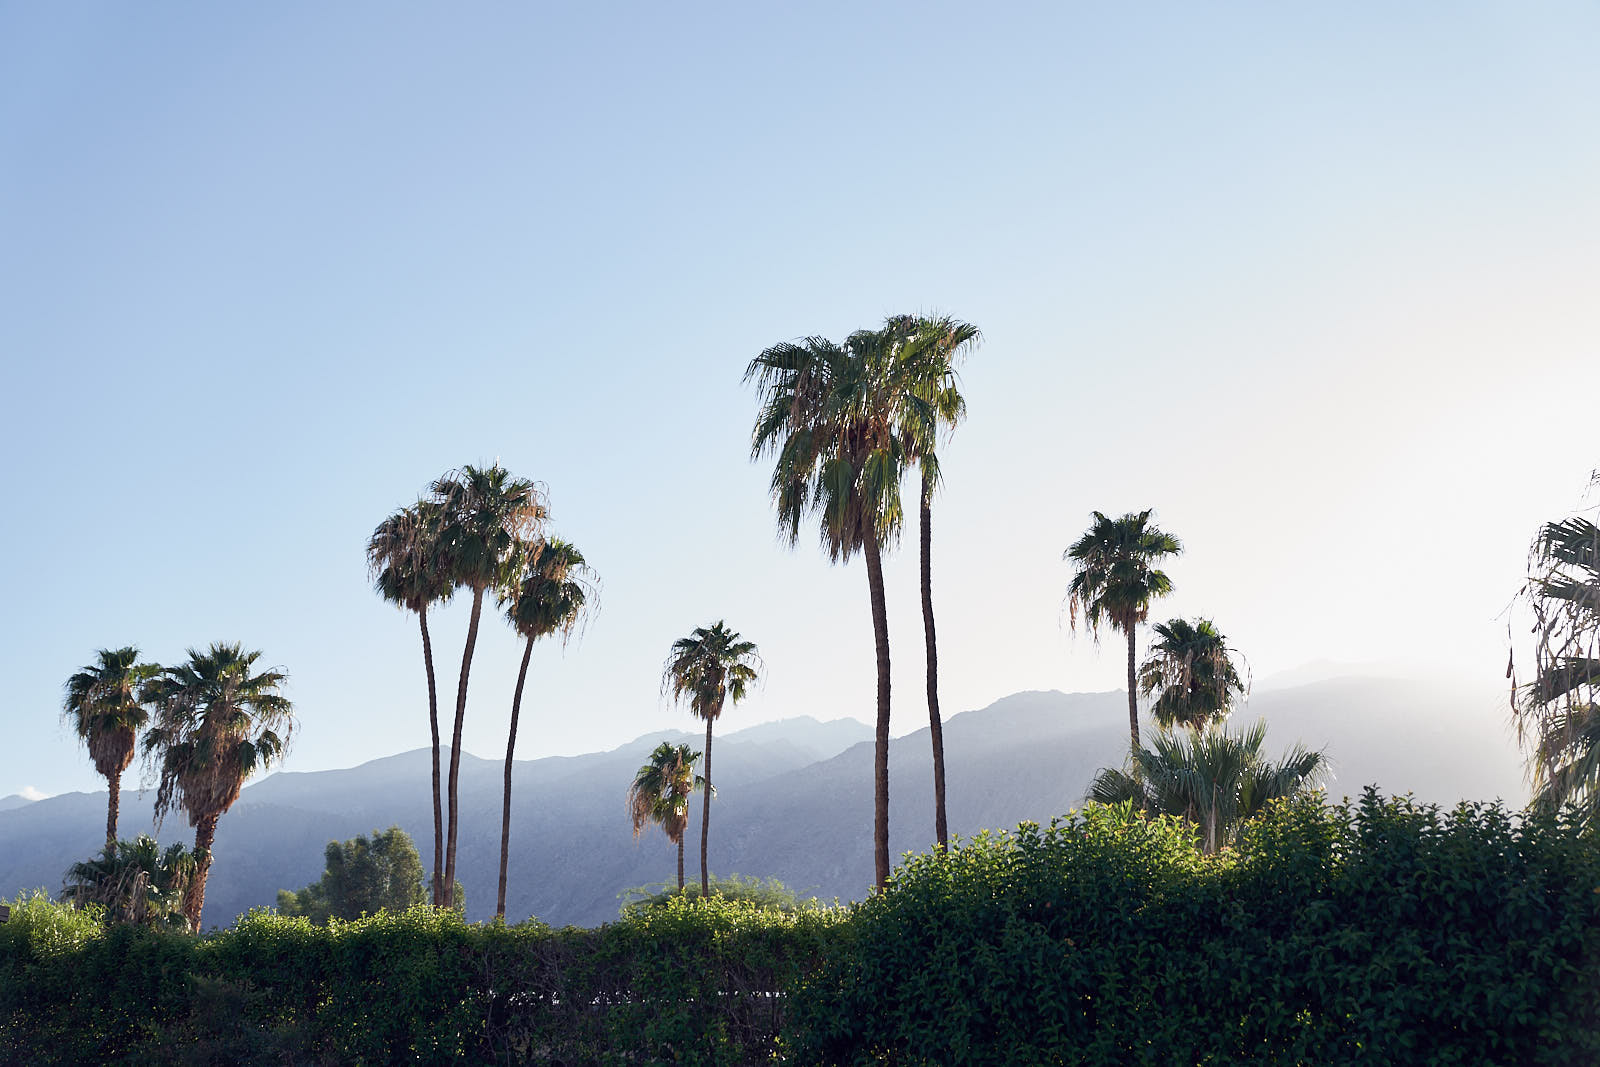 BEAR launch Frank Sinatra's House Palm Springs by Lost In Love Photography